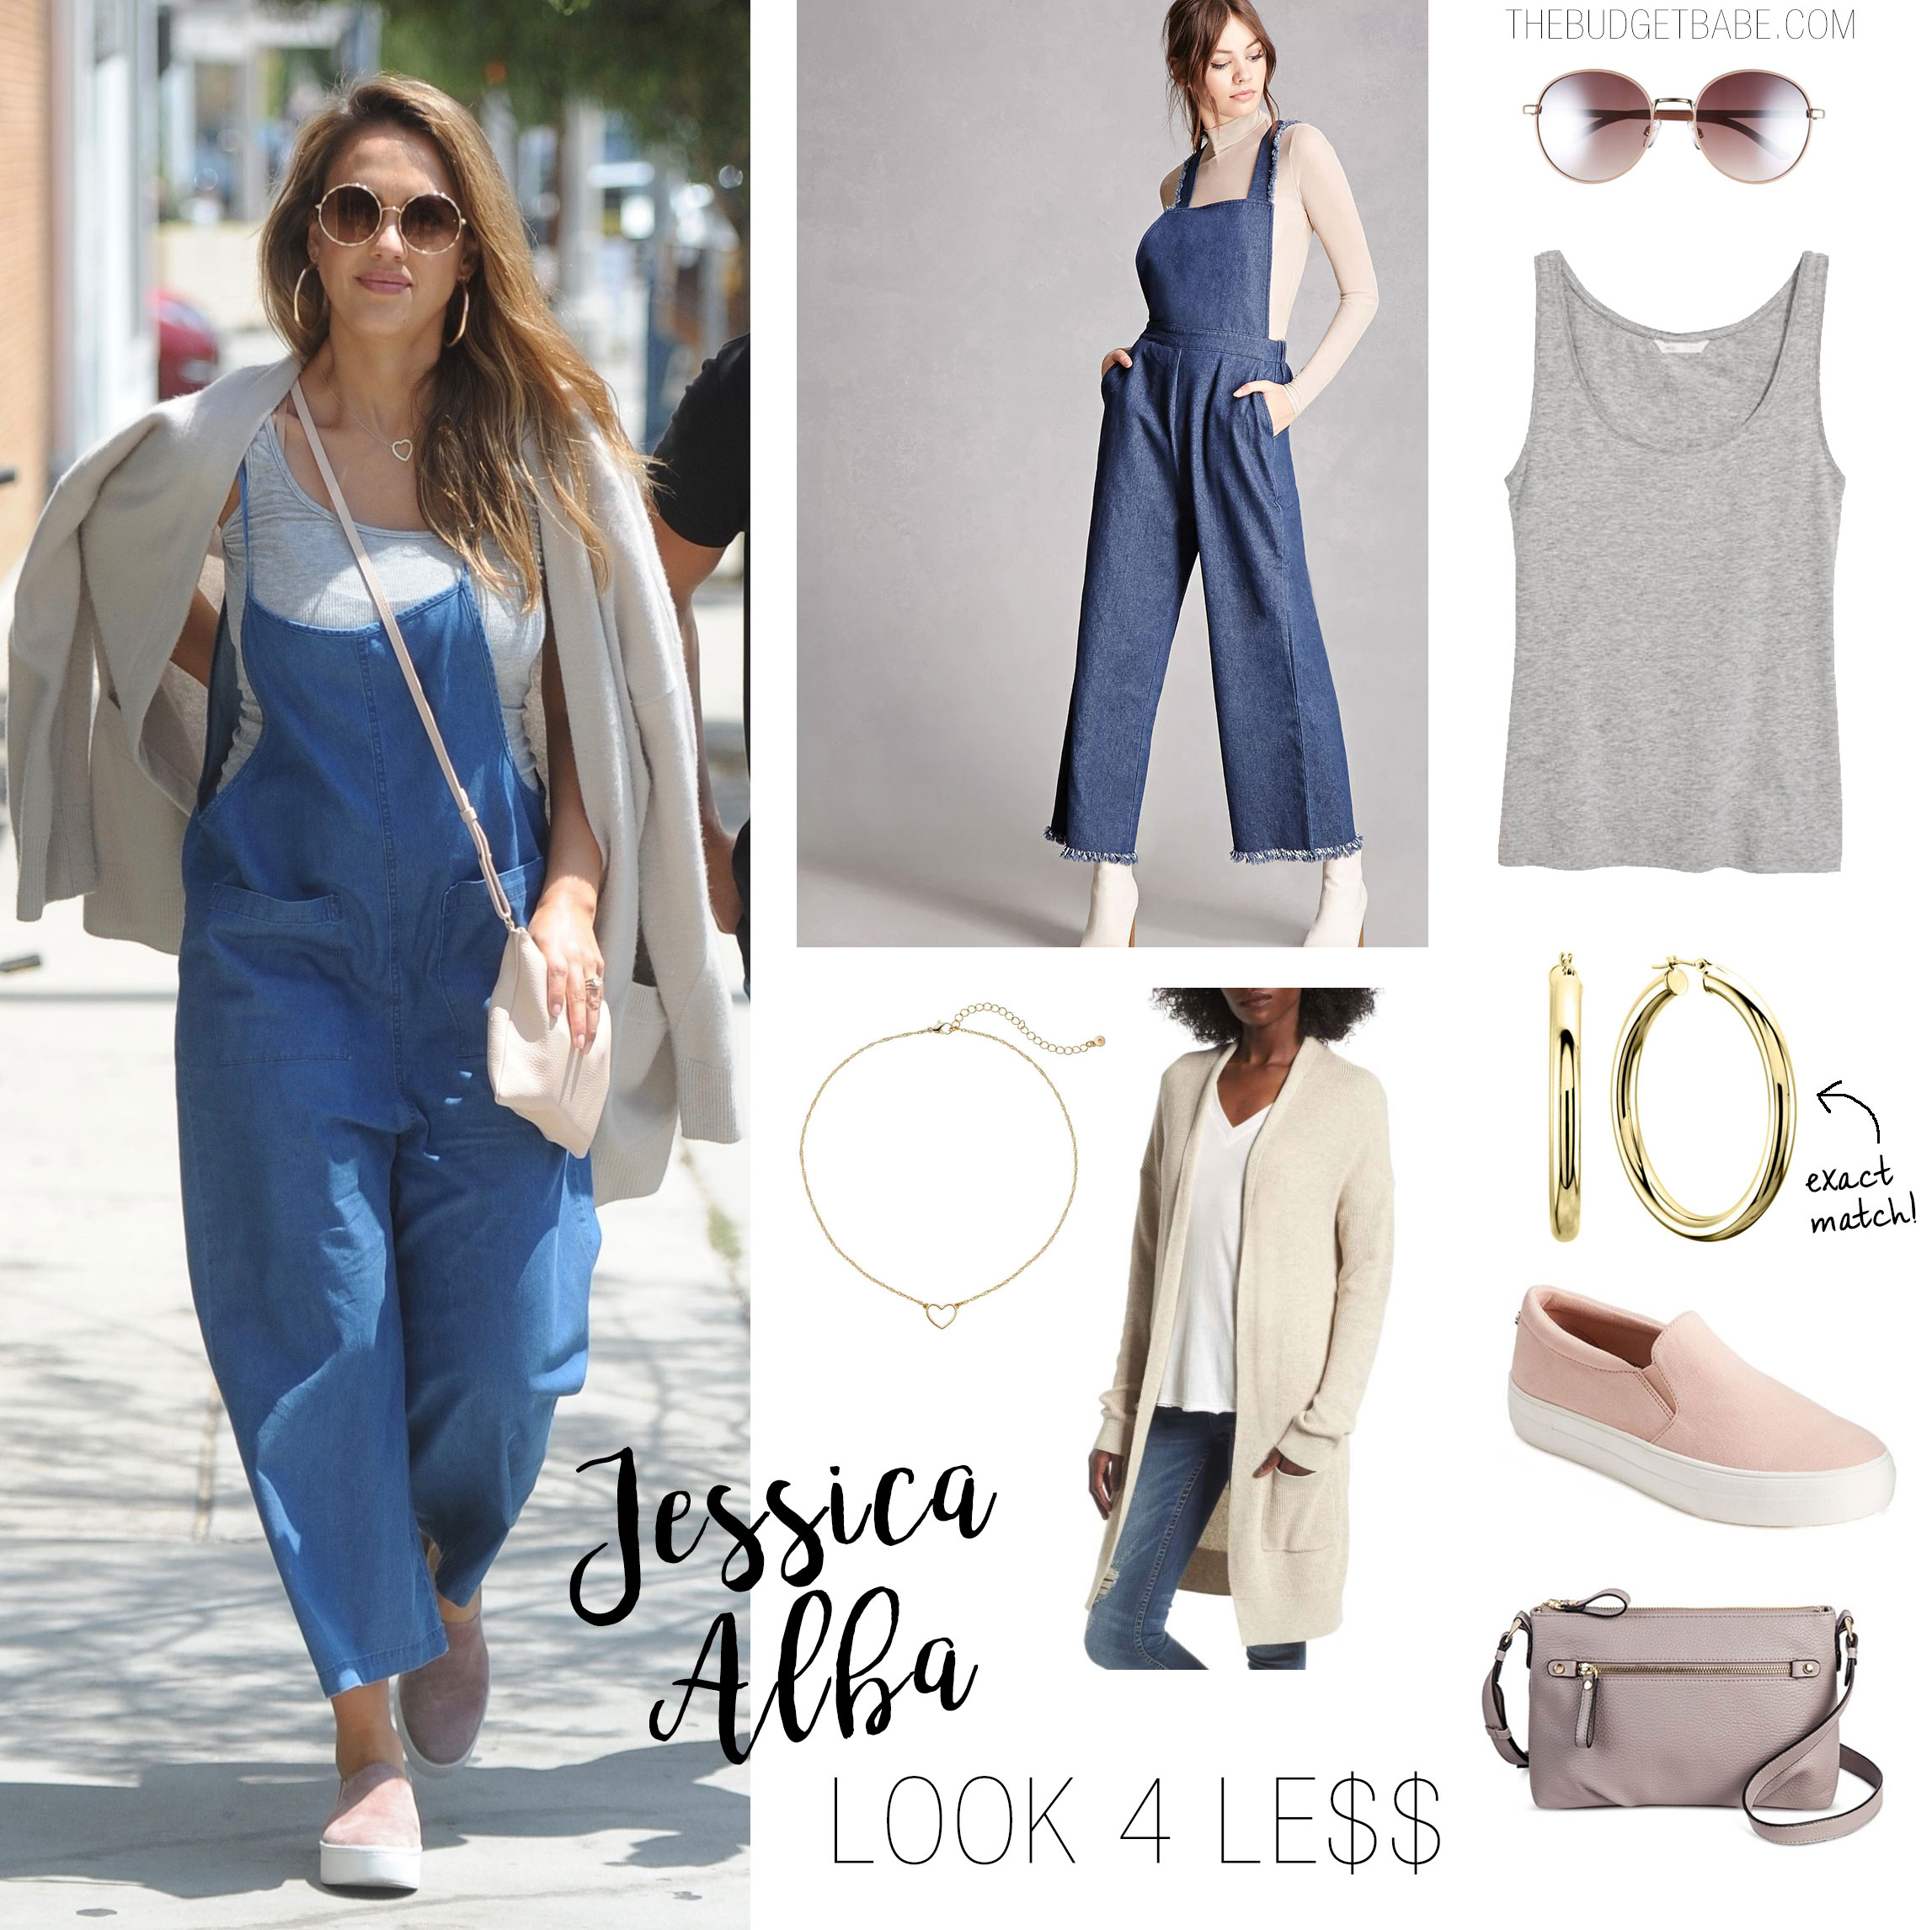 Jessica Alba looks cute in chambray overalls and blush slip on sneakers